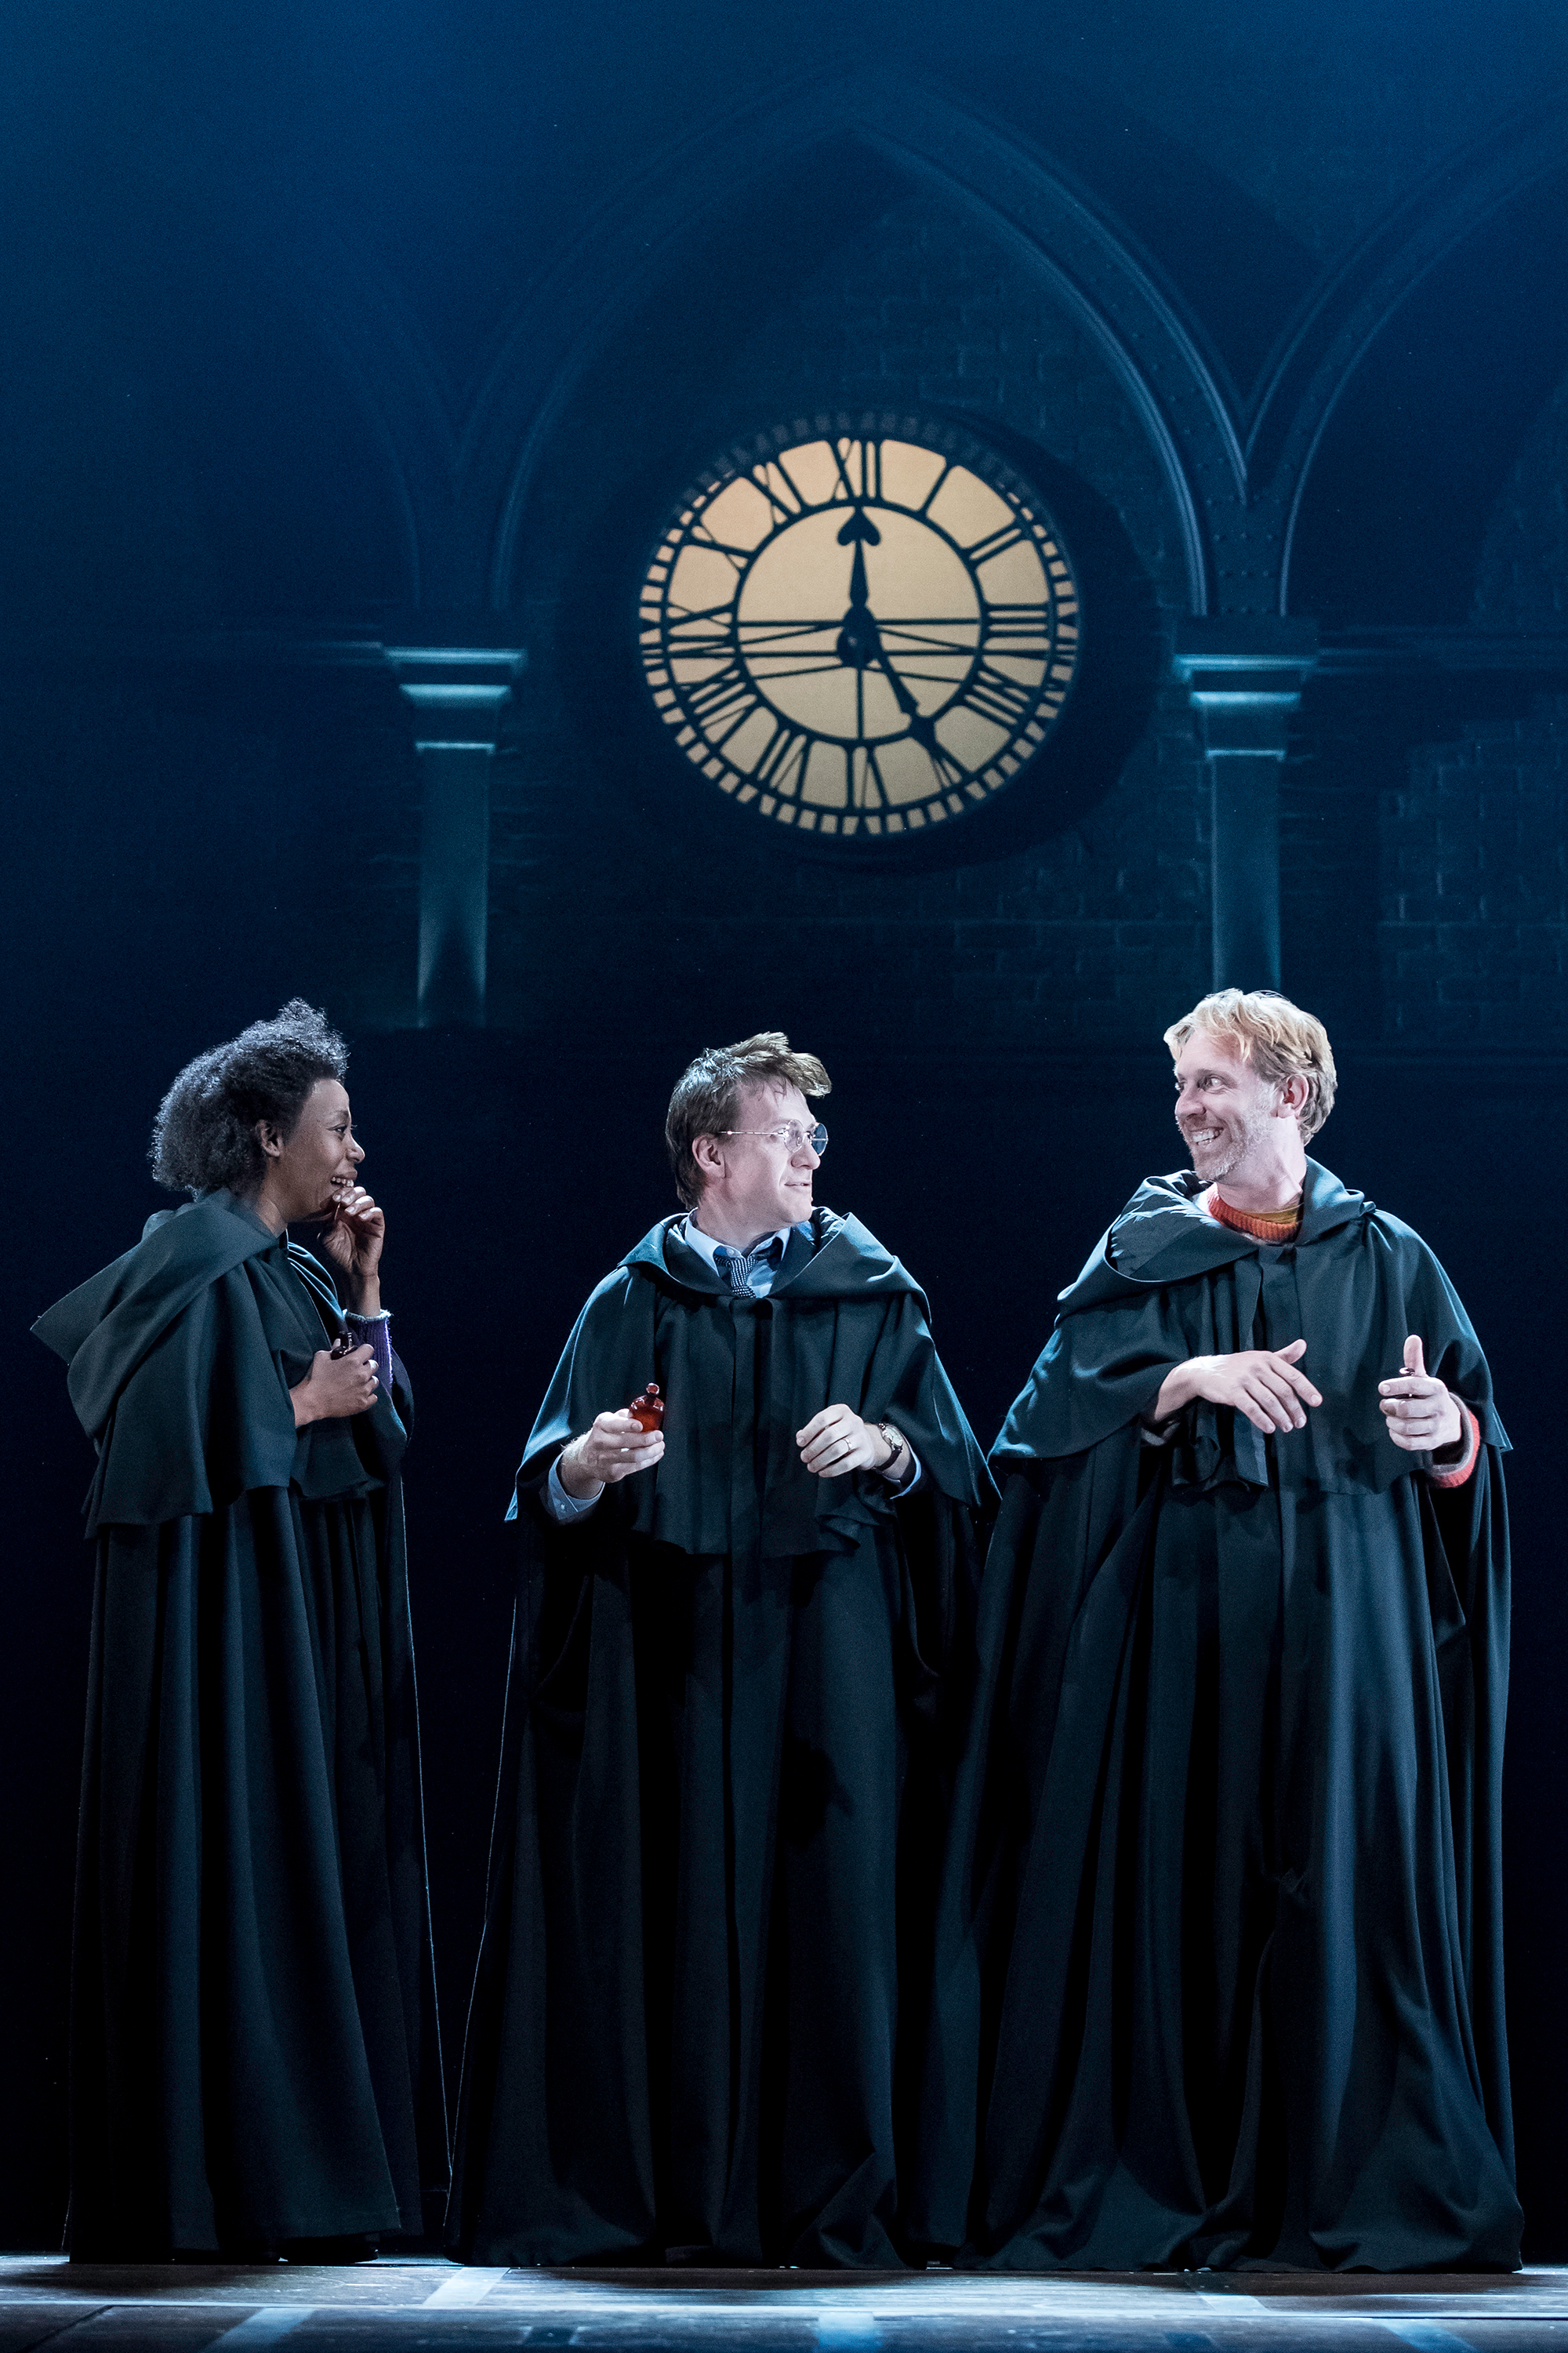 From left: Noma Dumezweni as Hermione Granger, Jamie Parker as Harry Potter and Paul Thornley as Ron Weasley in Harry Potter and the Cursed Child.